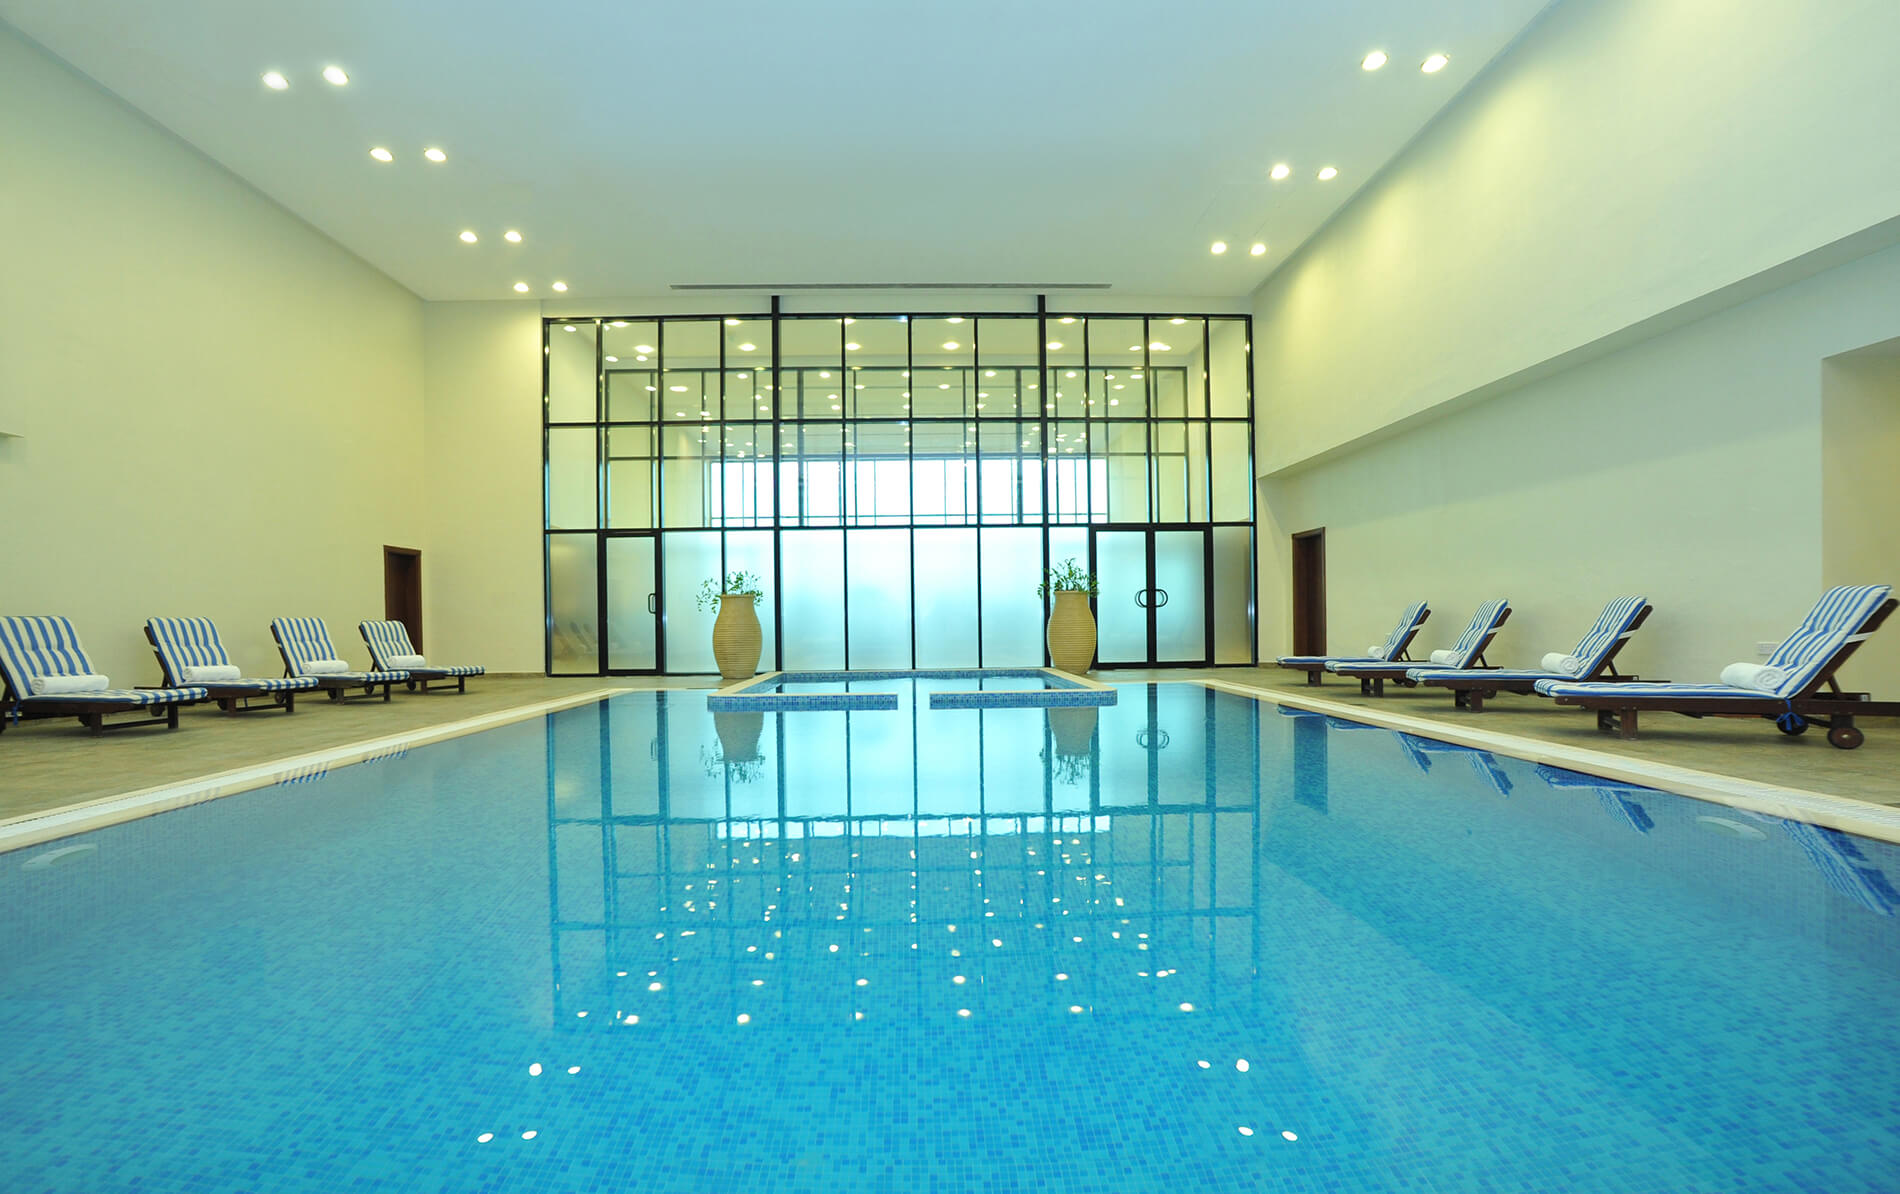 "{""id"":12,""facility_id"":11,""lang_id"":1,""hotel_id"":201000004,""name"":""Indoor Swimming Pool"",""slug"":""indoor-swimming-pool"",""description"":""<p>Whether you want to cool down and ease those aching muscles after a workout or simply take a relaxing swim, take a dip in the temperature-controlled indoor swimming pool. What&rsquo;s more, with a separate a kid&rsquo;s pool, this is the perfect place for the whole family to enjoy a fun escape from the heat of the day.<\/p>\r\n\r\n<p>Ramada Hotel &amp; Suites by Wyndham Ajman offers. It also offers swimming lessons for kids to provide your children with the confidence and freedom to enjoy swimming and water-based recreation, under the supervision of a professional swimming instructor.<\/p>\r\n\r\n<p>[break]<\/p>\r\n\r\n<table class=\""table table-dark table-striped table-bordered\"">\r\n\t<thead>\r\n\t\t<tr>\r\n\t\t\t<th>Facility<\/th>\r\n\t\t\t<th>Timing<\/th>\r\n\t\t<\/tr>\r\n\t<\/thead>\r\n\t<tbody>\r\n\t\t<tr>\r\n\t\t\t<td>Indoor Swimming Pool<\/td>\r\n\t\t\t<td>From 07:00 am to 11:00 pm<\/td>\r\n\t\t<\/tr>\r\n\t<\/tbody>\r\n<\/table>\r\n\r\n<div id=\""selection_bubble\"" style=\""position:absolute;\tvisibility:hidden; padding:15px; color:#333; background-color: white; border: 5px solid black; border-radius:10px; width:300px; z-index:10000\"">&nbsp;<\/div>\r\n\r\n<div id=\""selection_bubble\"" style=\""position:absolute;\tvisibility:hidden; padding:15px; color:#333; background-color: white; border: 5px solid black; border-radius:10px; width:300px; z-index:10000\"">&nbsp;<\/div>\r\n\r\n<div id=\""selection_bubble\"" style=\""position:absolute;\tvisibility:hidden; padding:15px; color:#333; background-color: white; border: 5px solid black; border-radius:10px; width:300px; z-index:10000\"">&nbsp;<\/div>"",""sort"":3,""status"":1,""created_at"":""2019-10-30 07:41:00"",""updated_at"":""2019-12-17 11:05:03"",""deleted_at"":null,""image_slider"":{""id"":1227,""lang_id"":1,""image_sliderable_id"":12,""image_sliderable_type"":""App\\HotelFacility"",""image_slider"":""uploads\/image-slider\/1eecd0c1f72758c97043853ec93f2ac01574061457.jpg"",""name"":null,""sub_name"":null,""content"":null,""status"":1,""created_at"":""2019-11-18 07:17:37"",""updated_at"":""2019-11-18 07:17:37"",""sort"":null,""is_mobile"":0}}-slider"